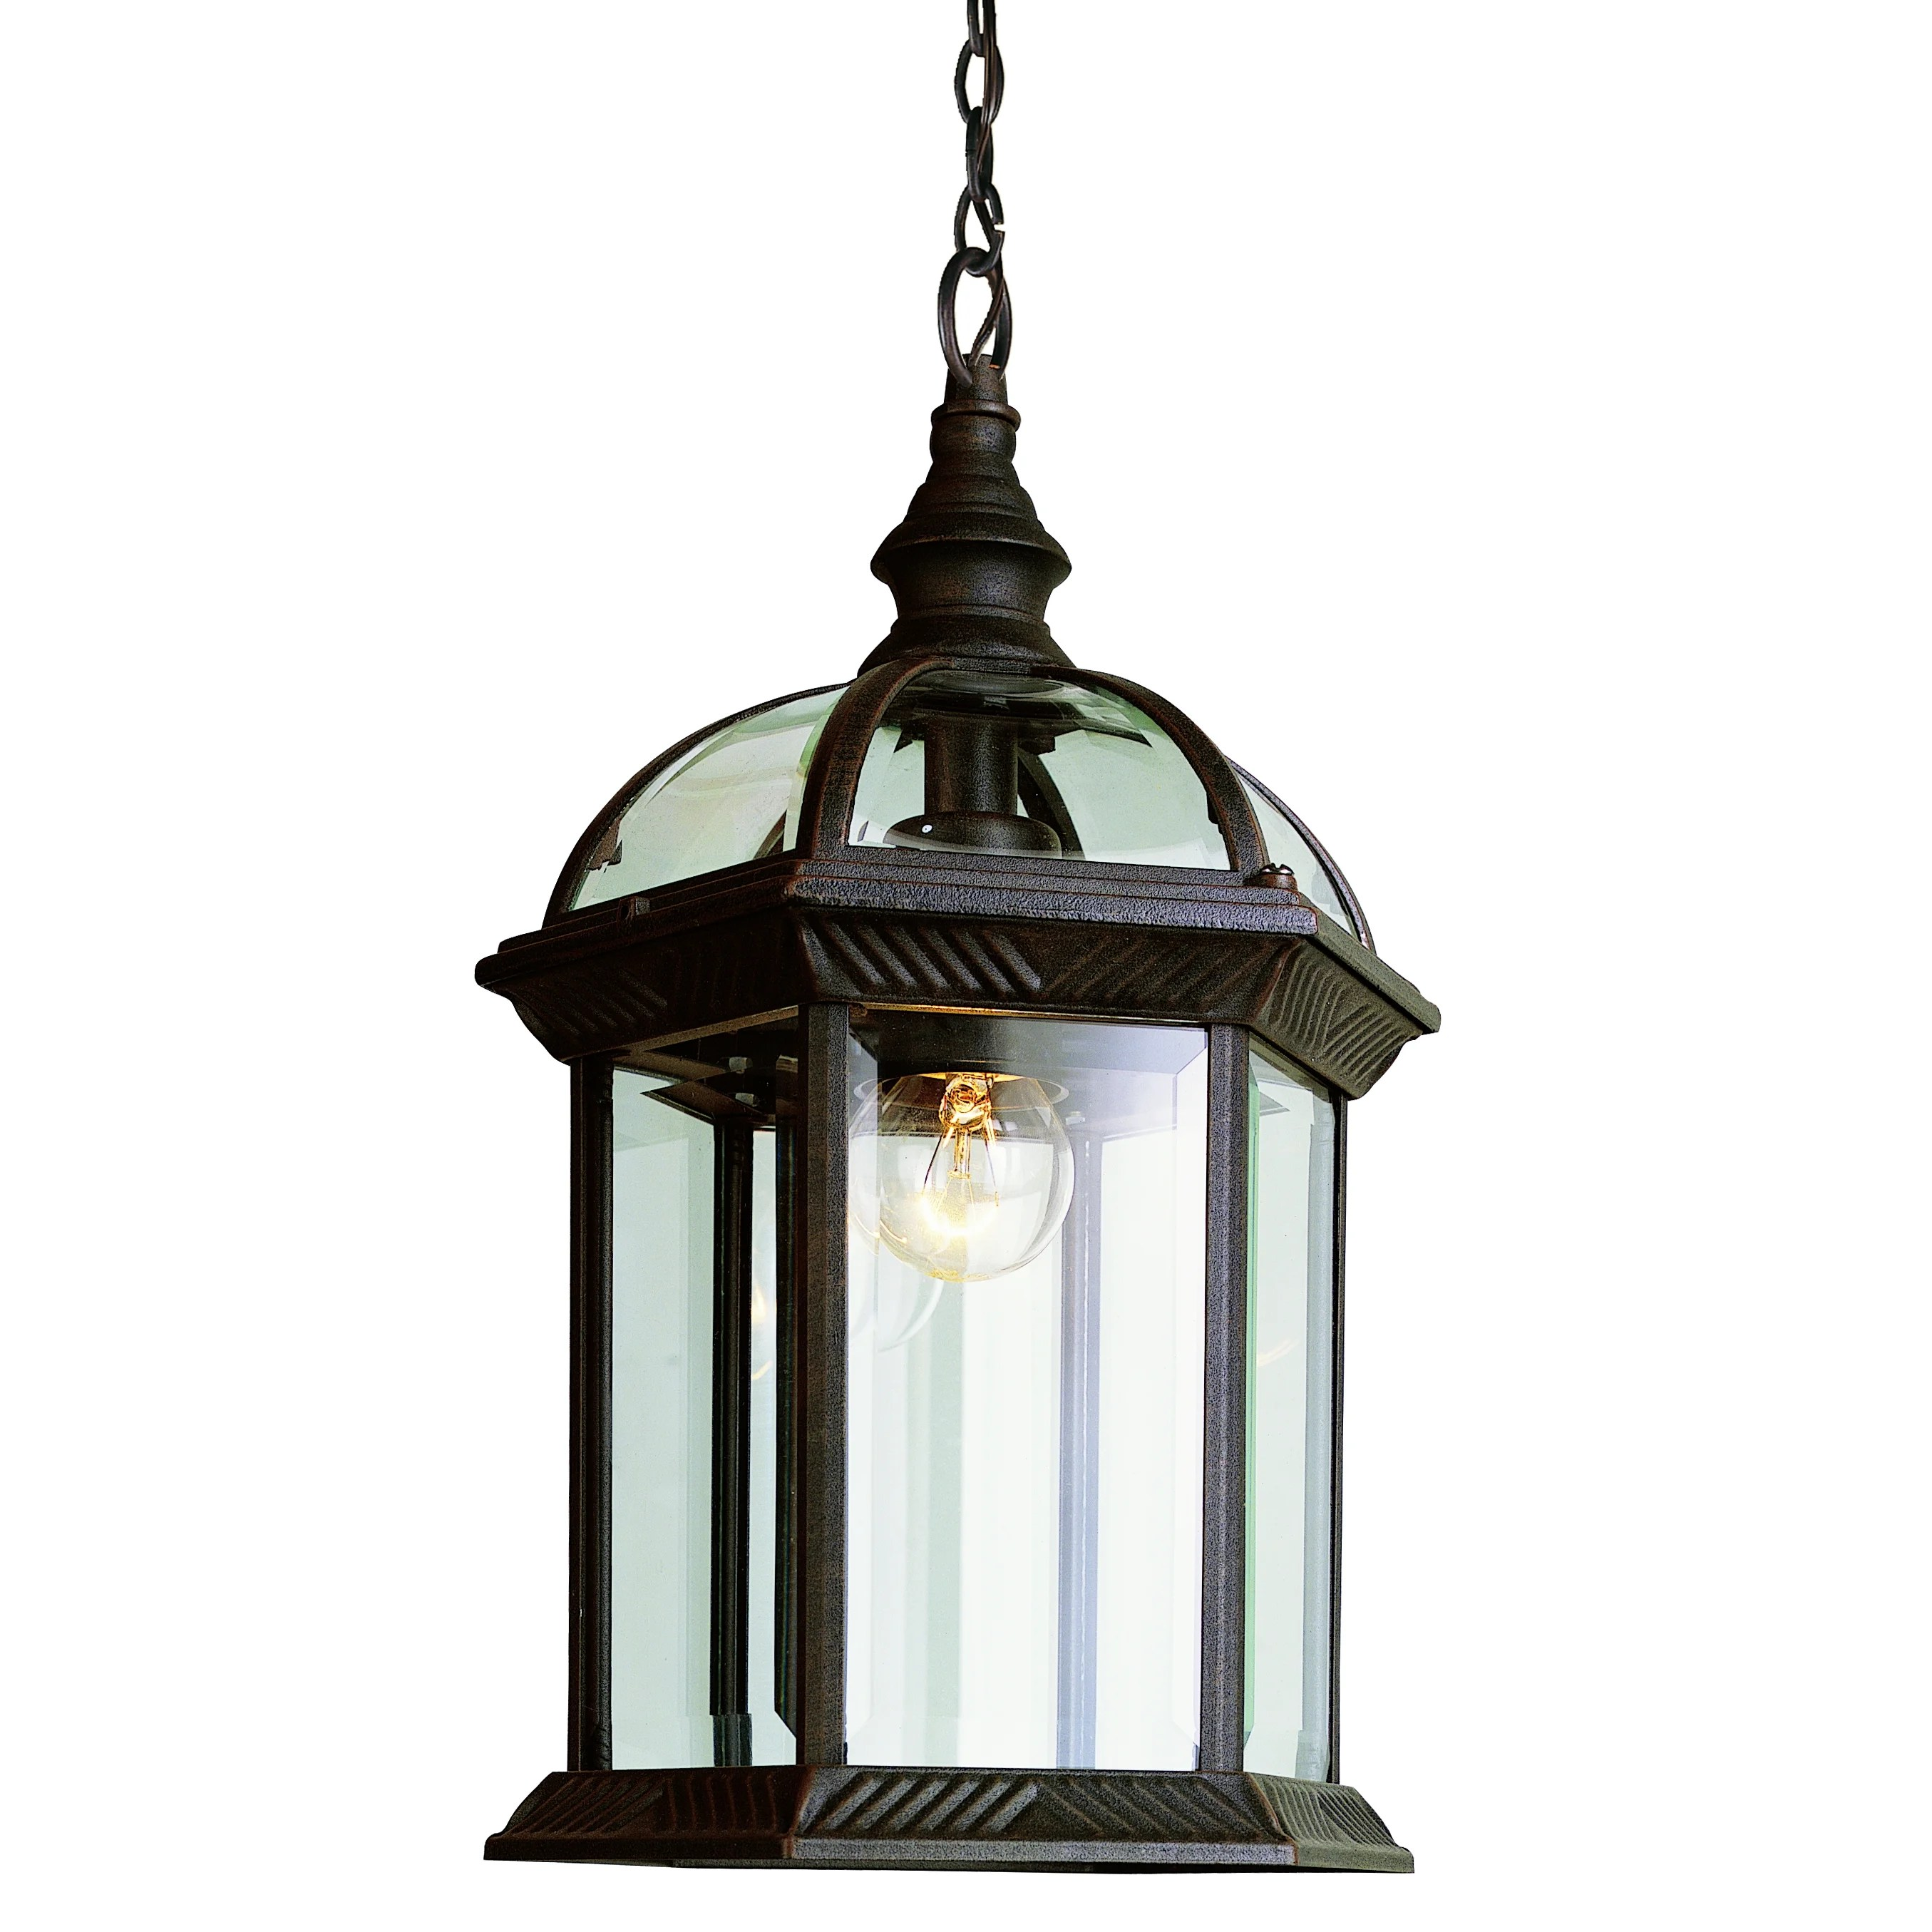 Outdoor Hanging Lanterns Transglobe Lighting 1 Light Outdoor Hanging Lantern